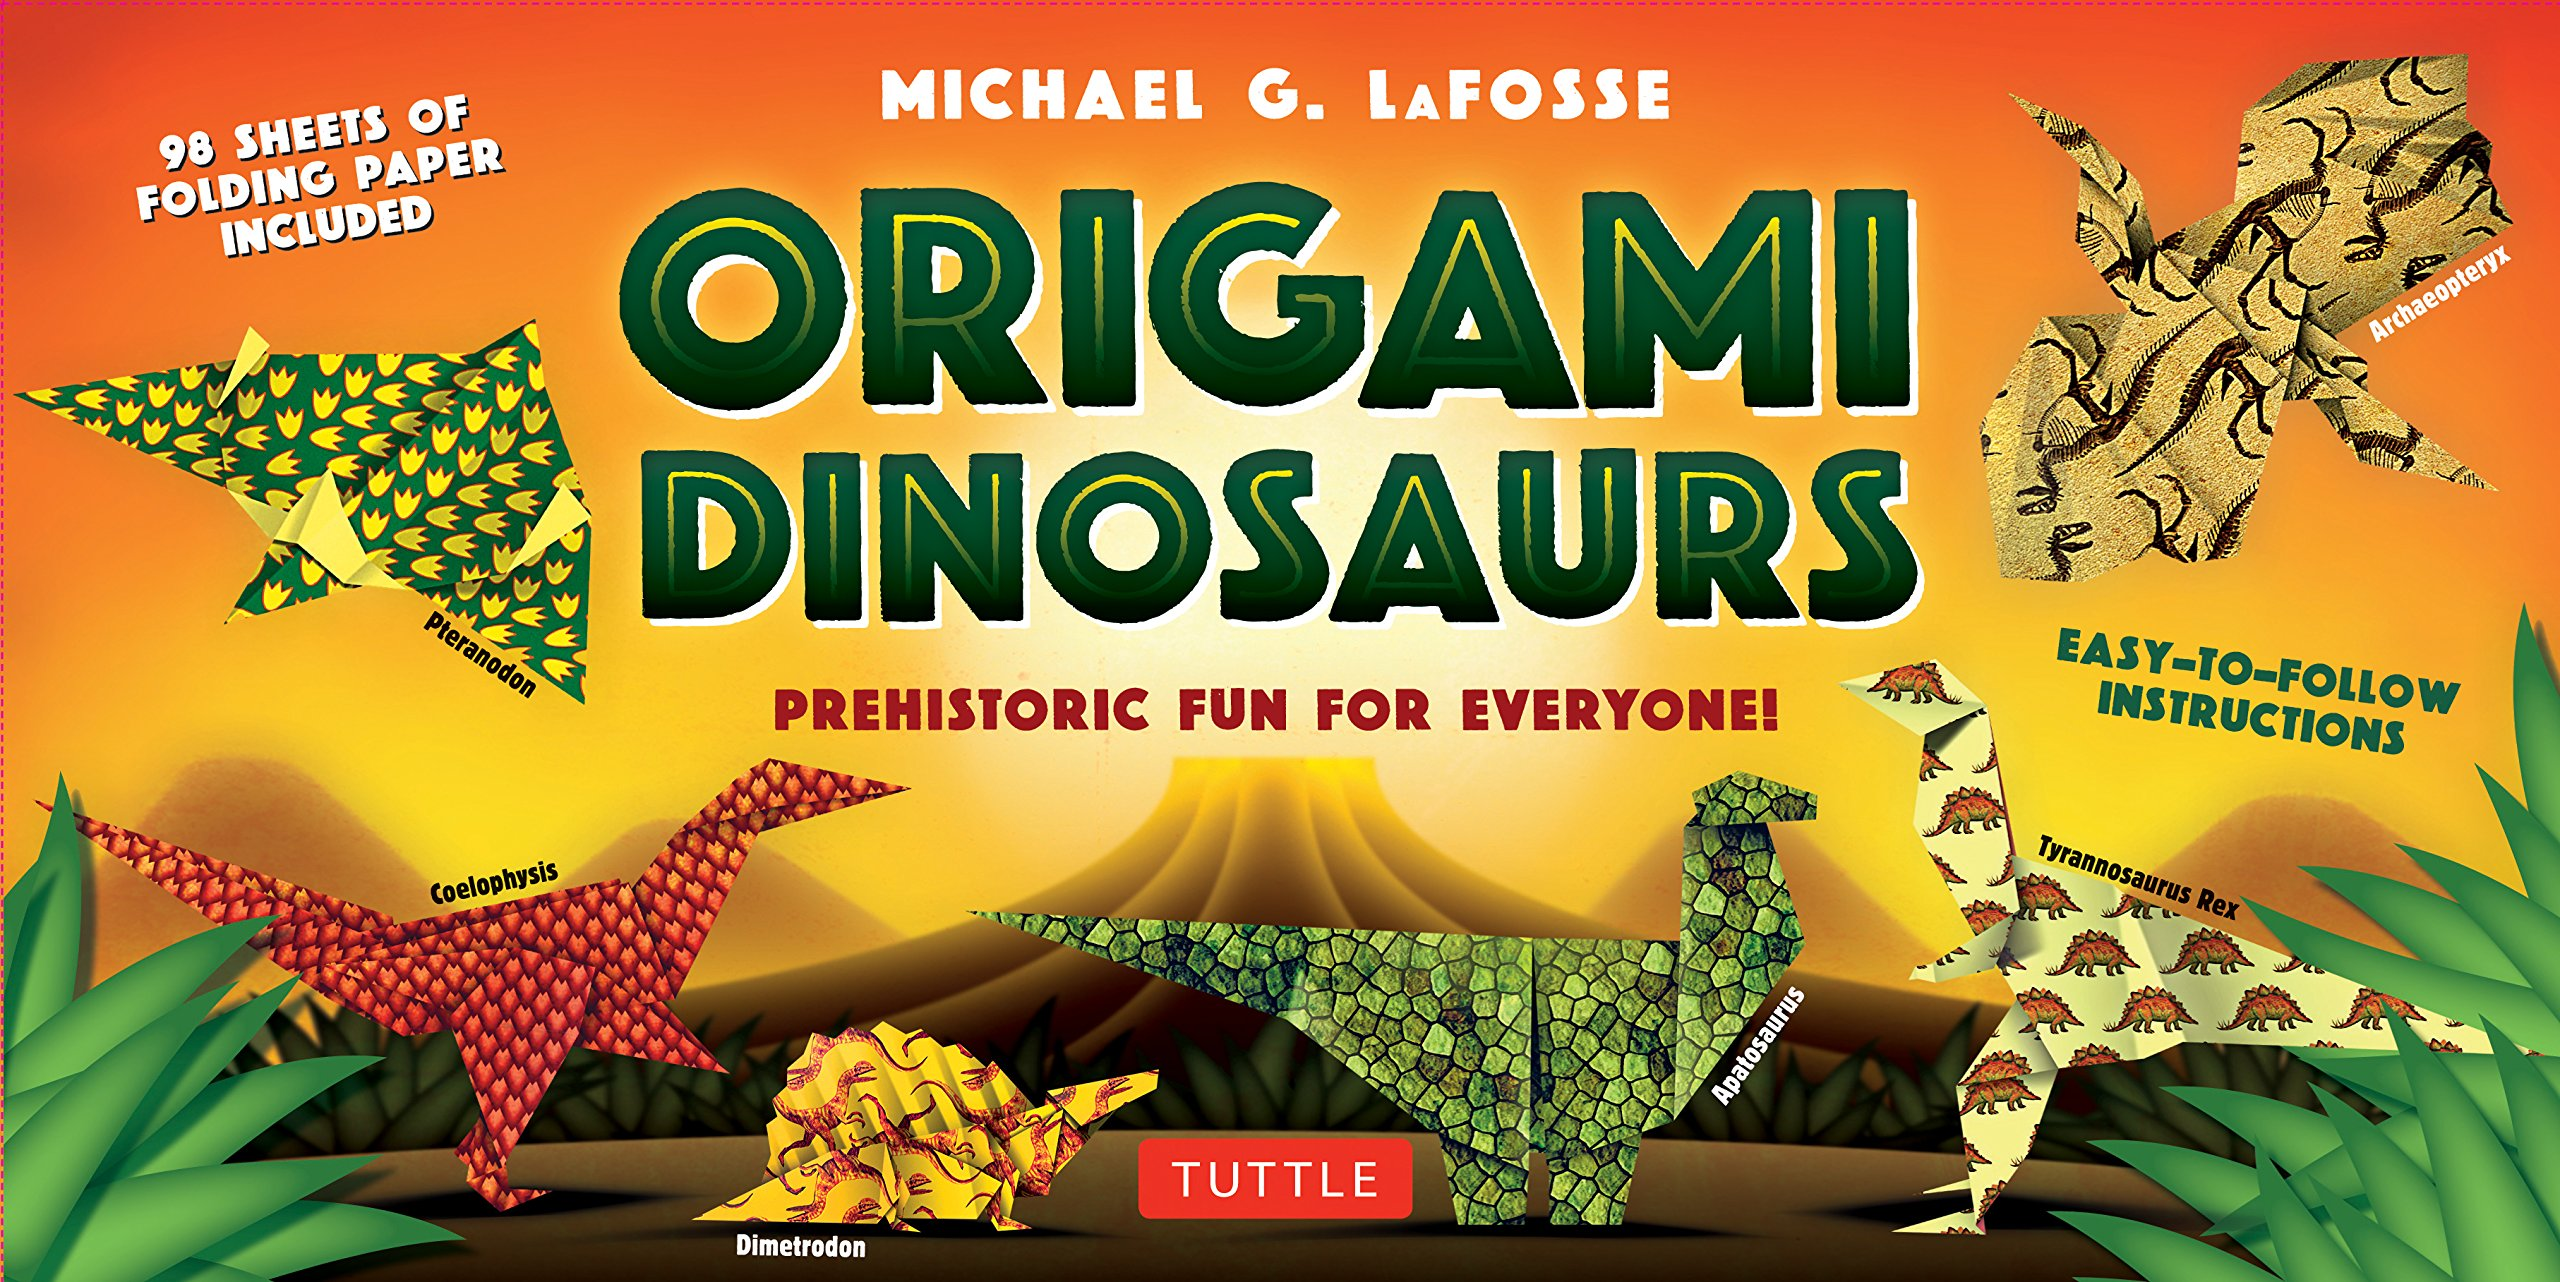 Origami Dinosaurs Kit: Prehistoric Fun for Everyone!: Kit Includes 2 Origami Books, 20 Fun Projects and 98 High-Quality Origami Papers Paperback – February 14, 2017 Michael G. LaFosse Tuttle Publishing 0804847053 Crafts for Children